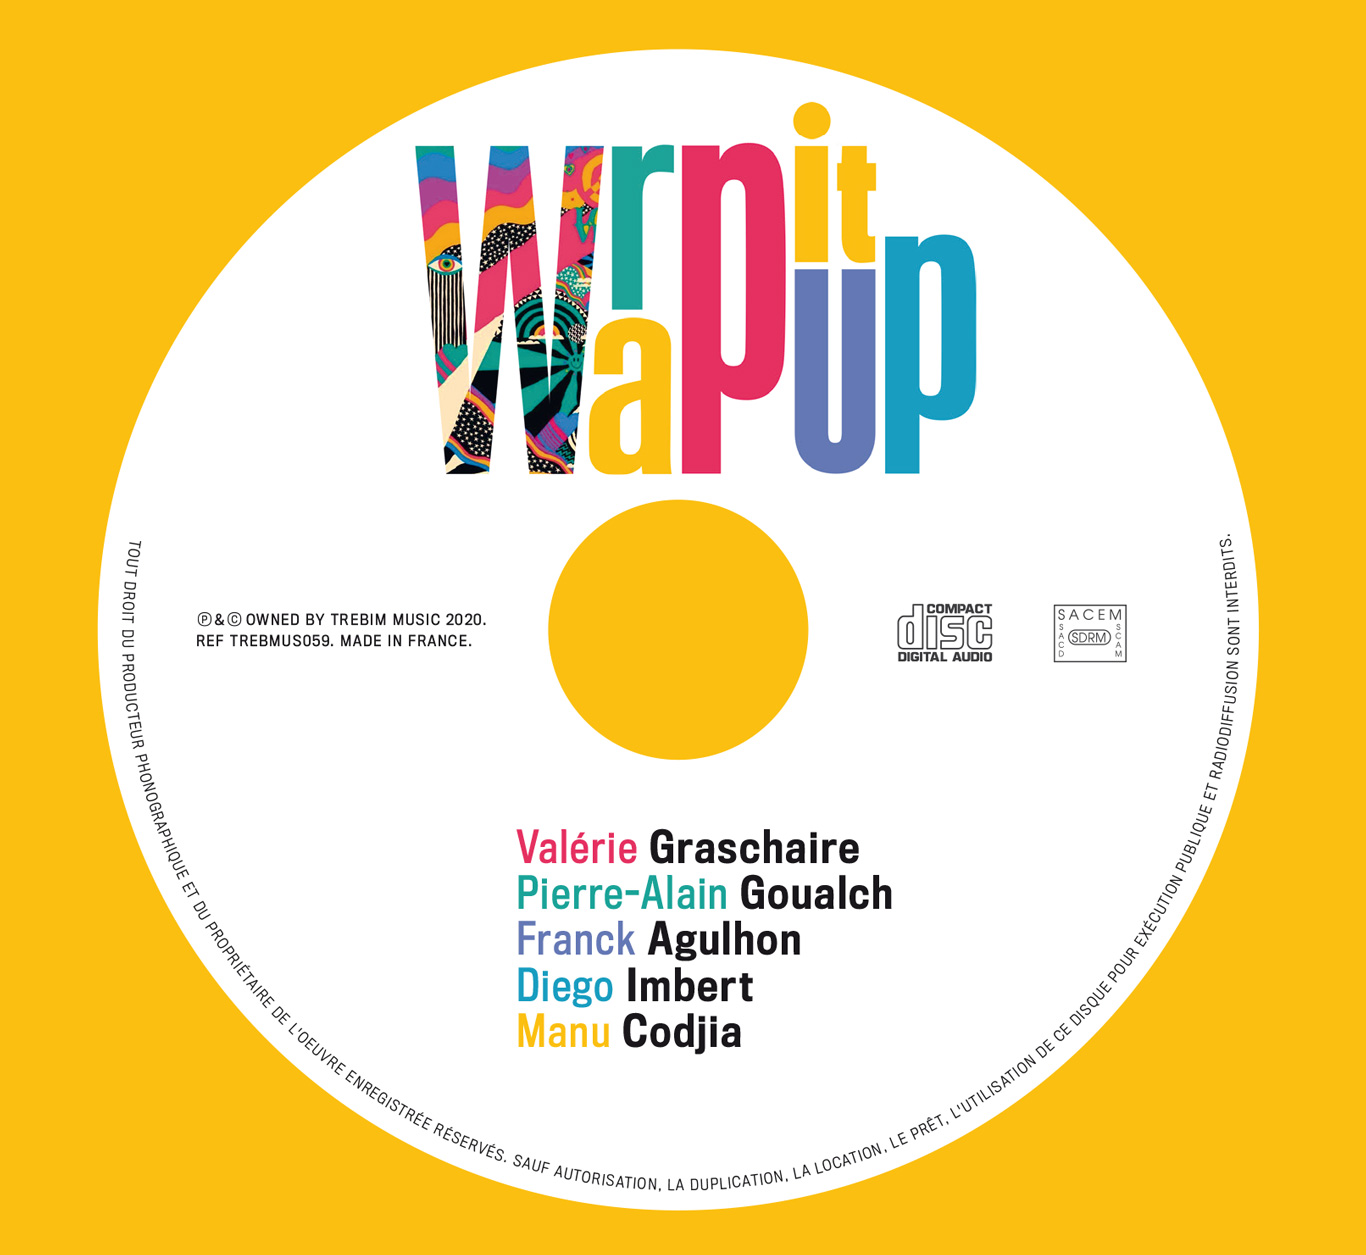 WrapItUp-ValerieGraschaire-Img3